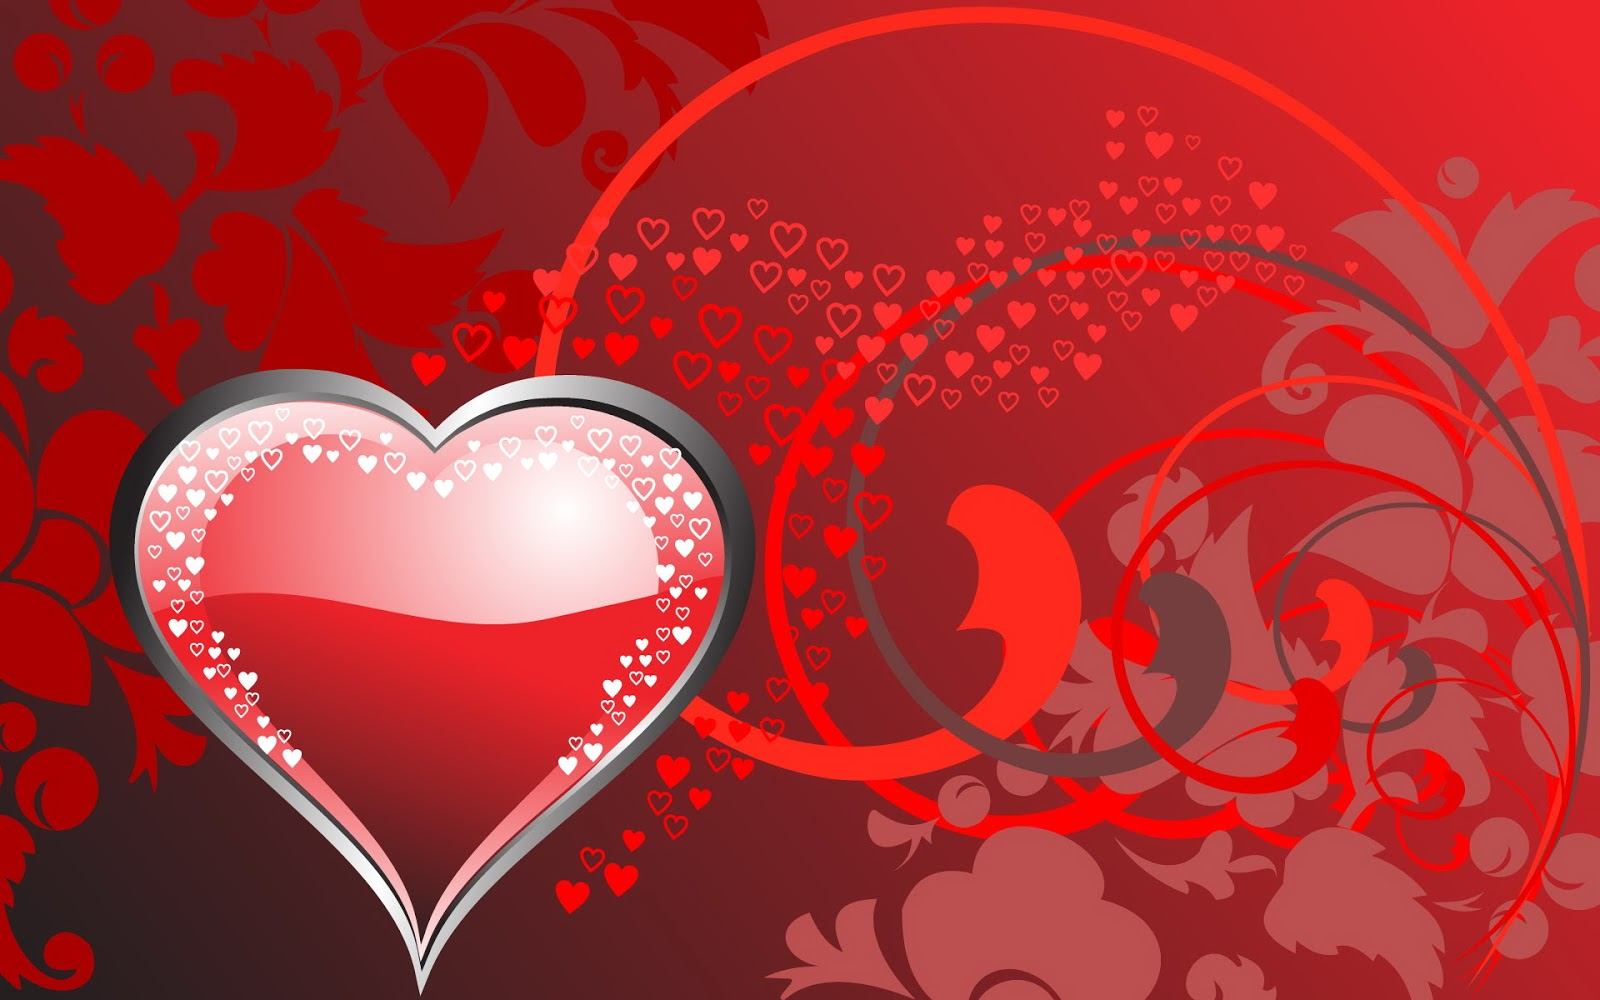 New Latest Happy Valentines Day 2014 Pictures And Photos. 1600 x 1000.Valentines Quotes For Husband